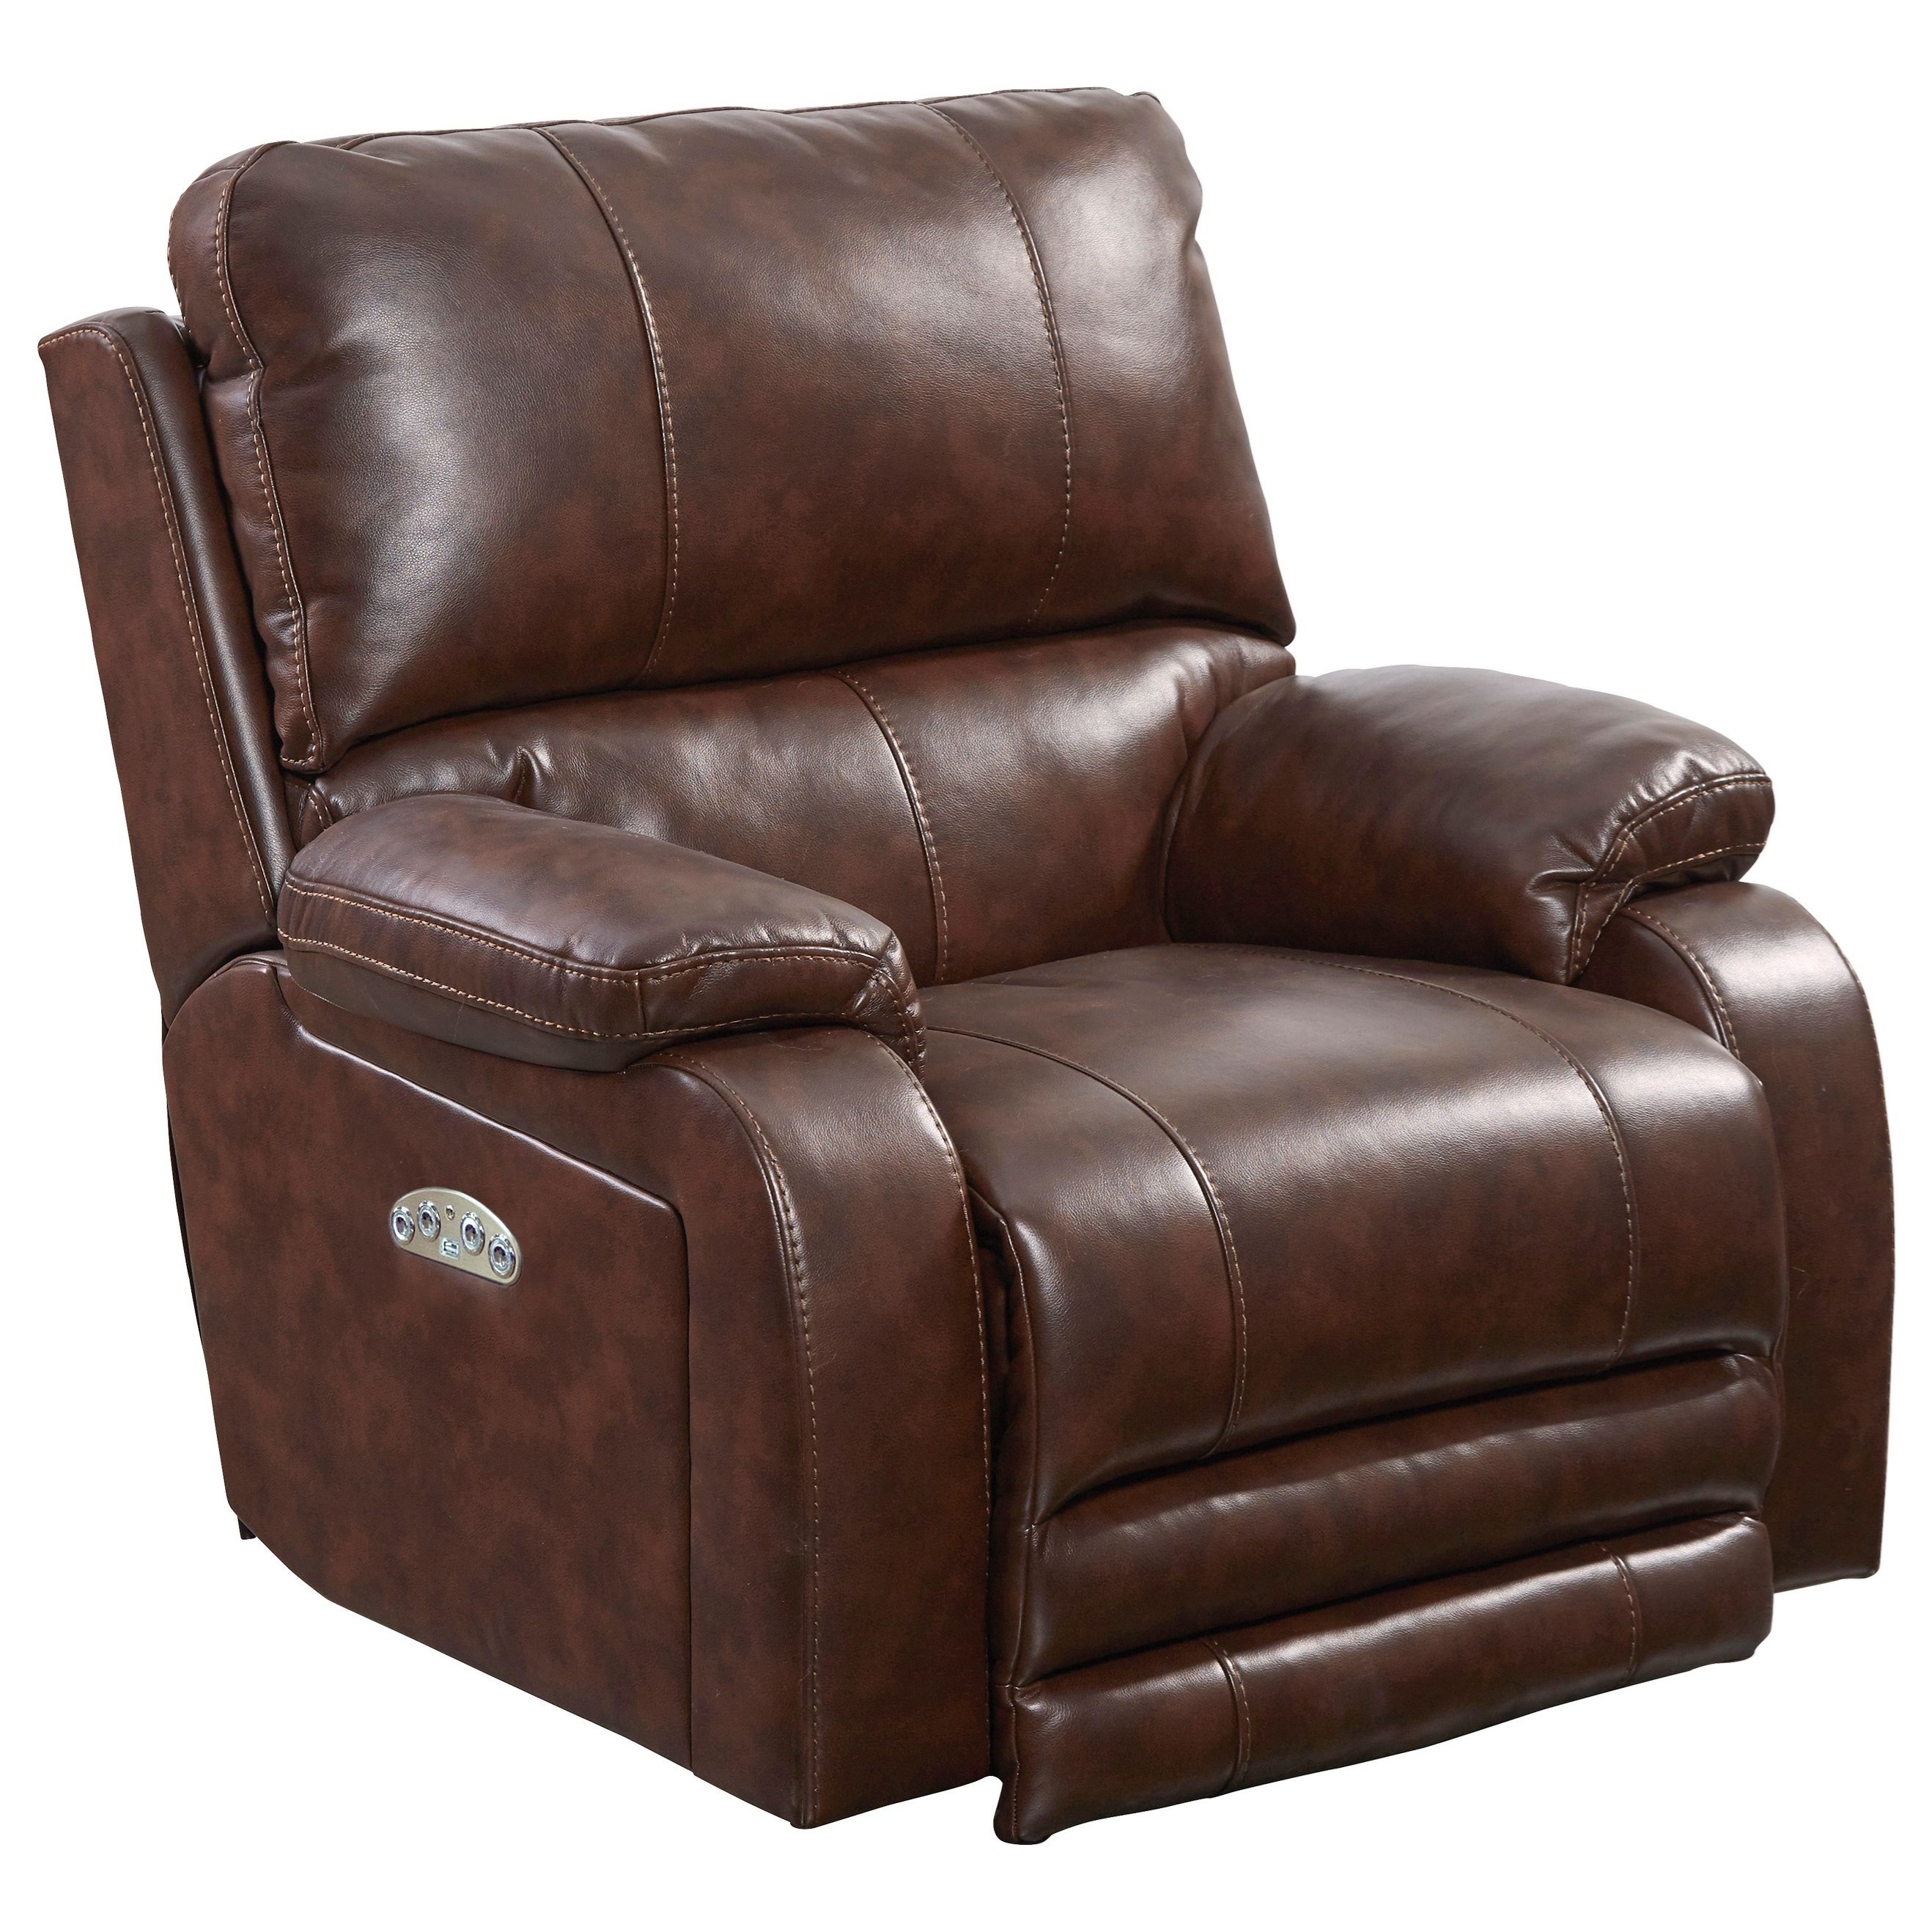 Catnapper motion chairs and recliners 764762 7 thornton for Furniture helpline